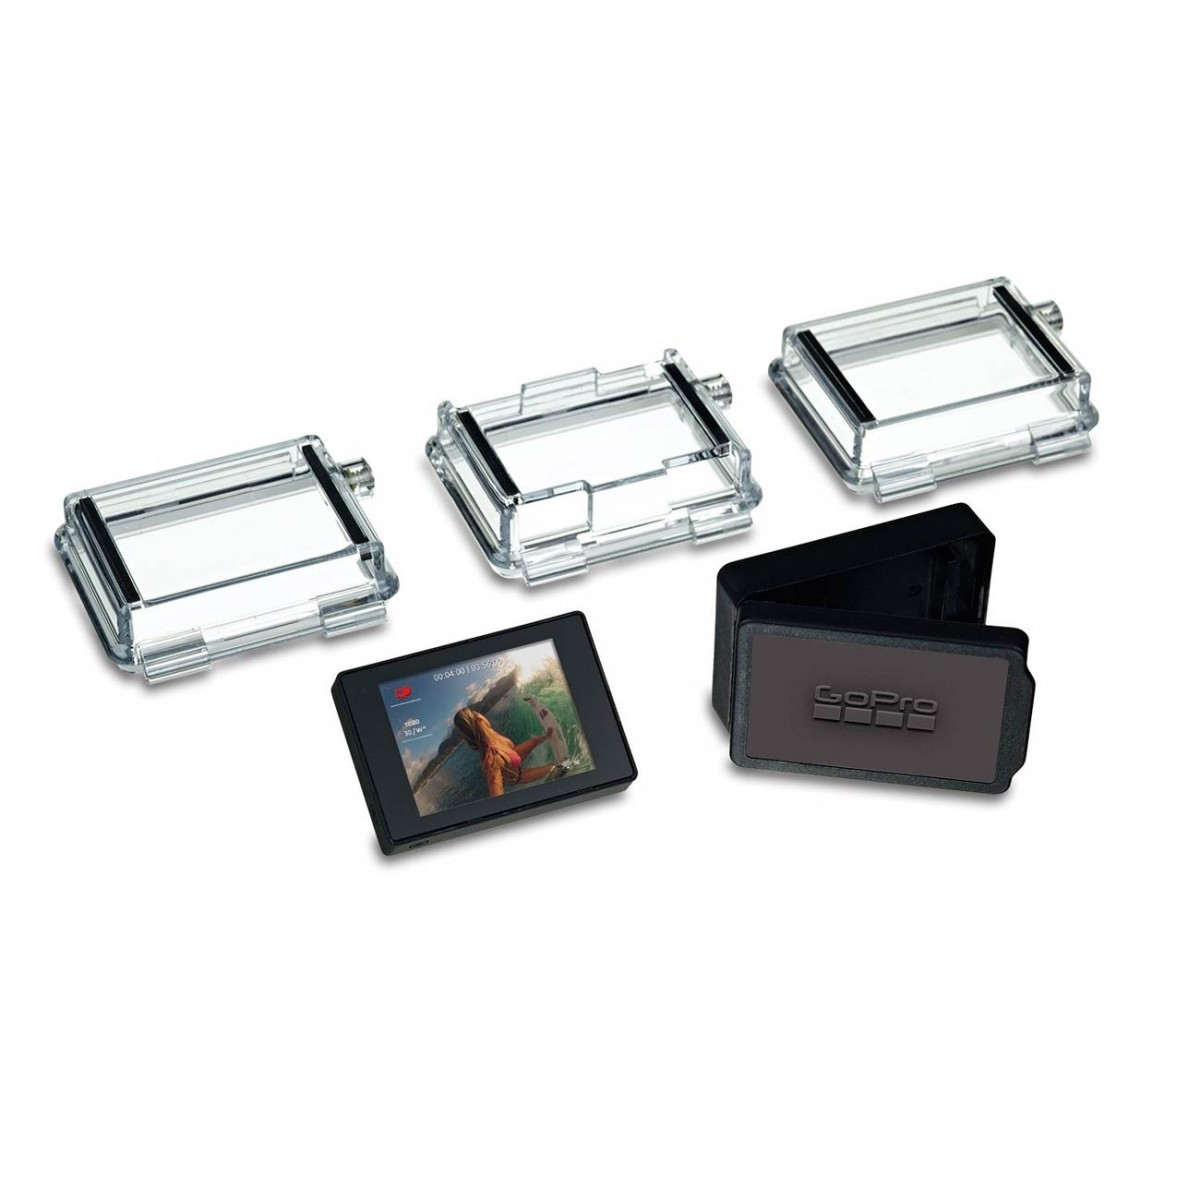 GoPro LCD Touch BacPac - Tela LCD Touch p/ GoPro Hero 4 3 3+